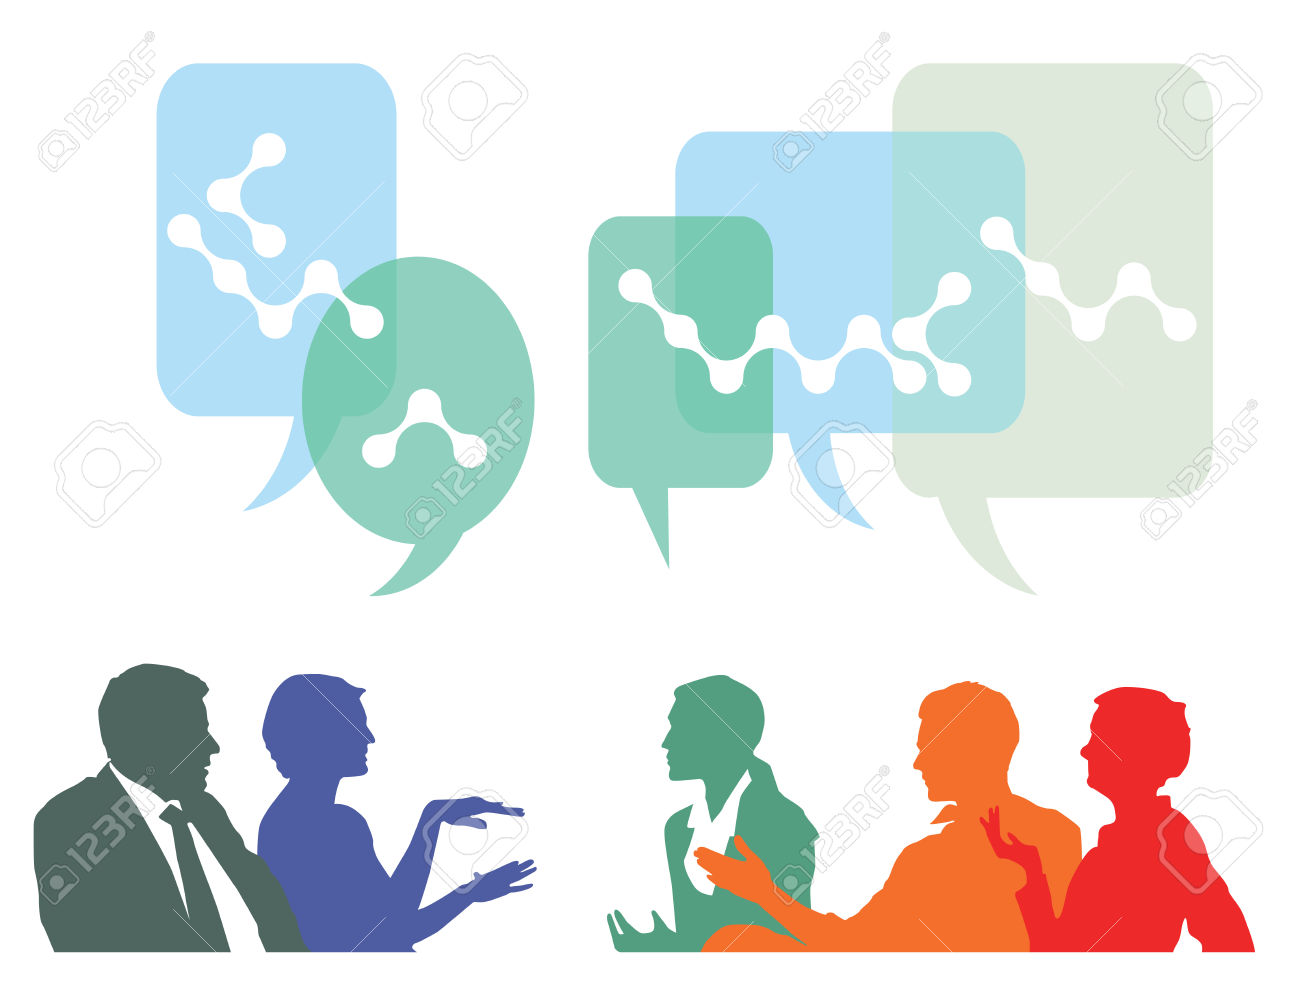 People Discuss And Exchange Ideas Royalty Free Cliparts, Vectors.